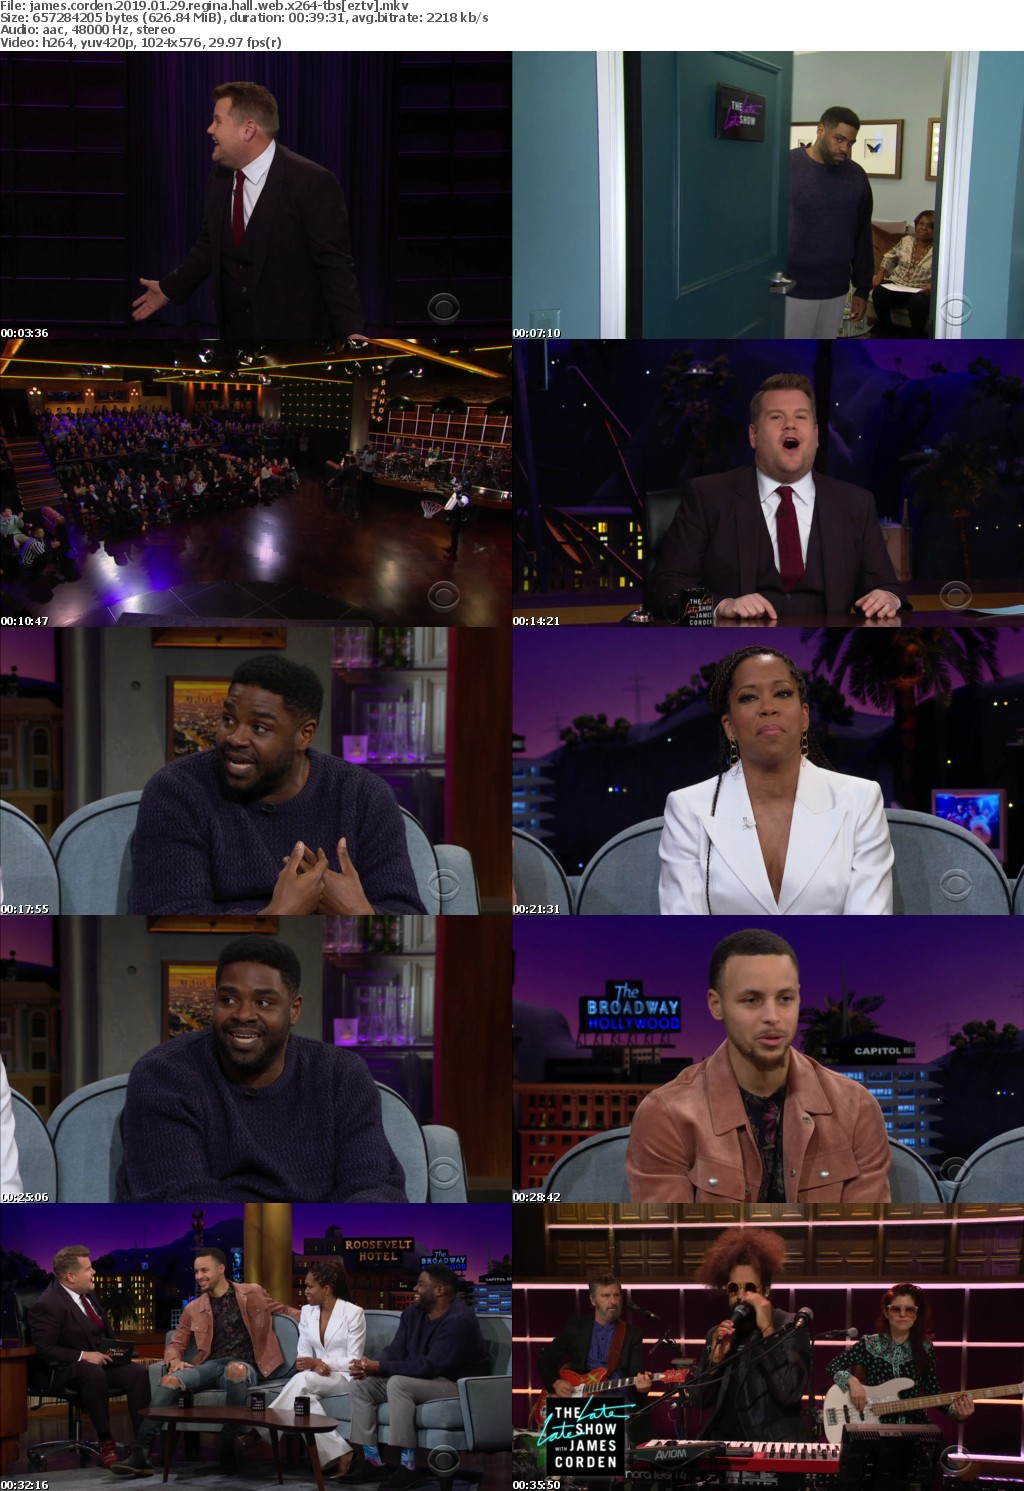 James Corden (2019) 01 29 Regina Hall WEB x264-TBS